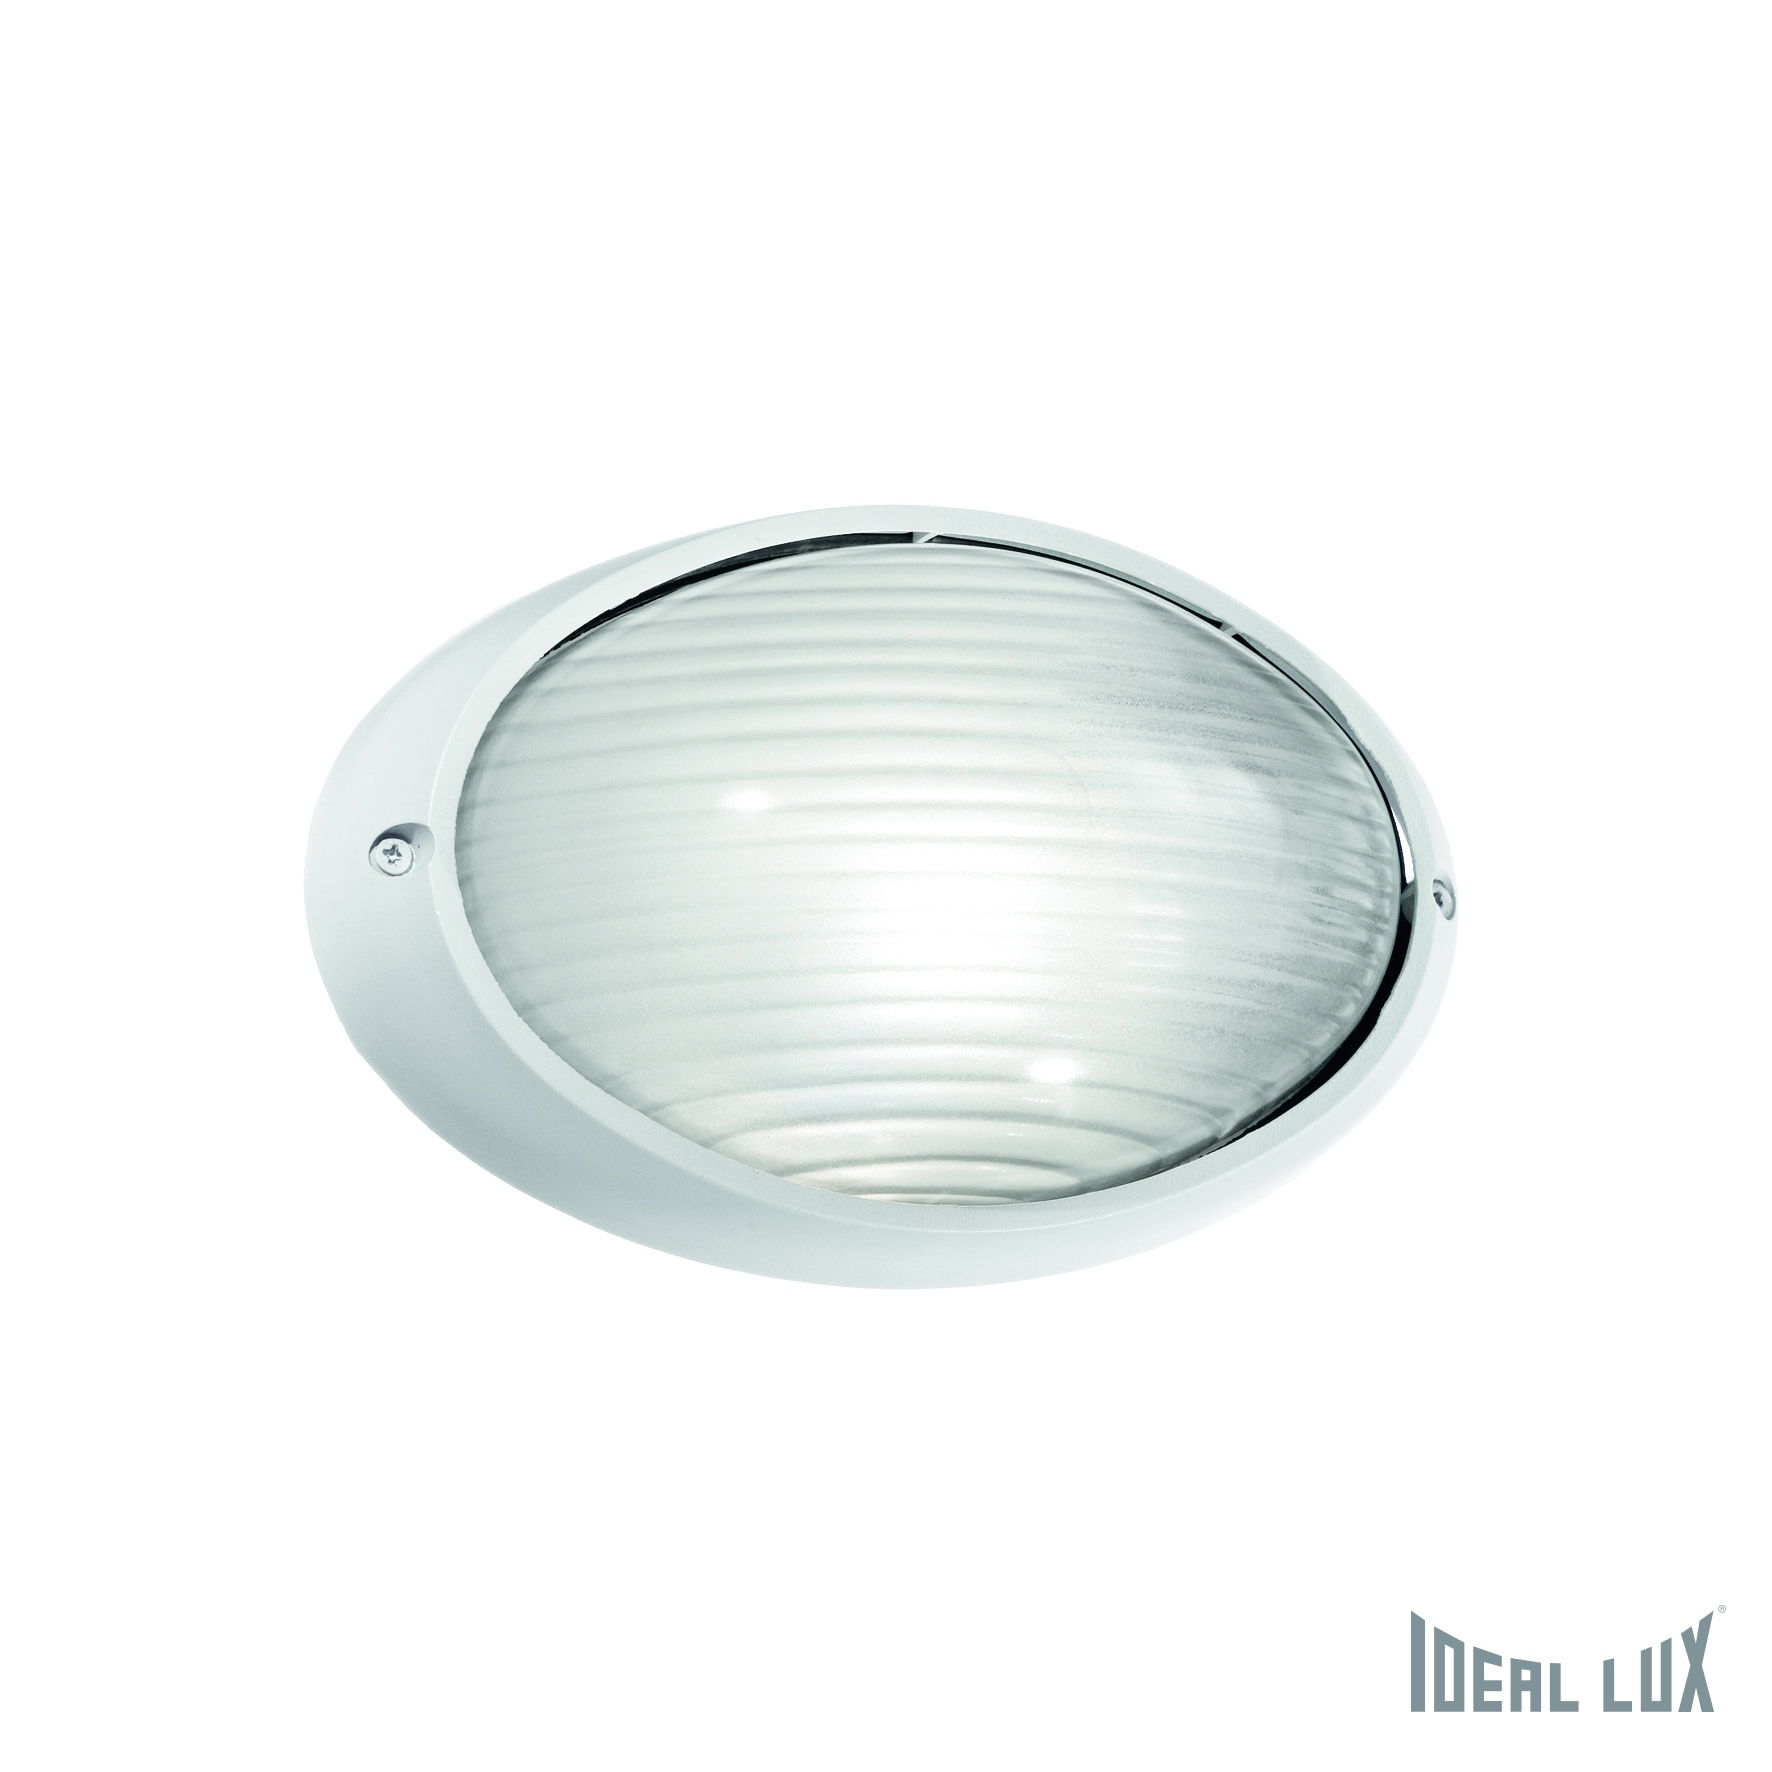 Настенное бра Ideal Lux Mike MIKE AP1 SMALL BIANCO namat бра ideal lux terra ap1 small